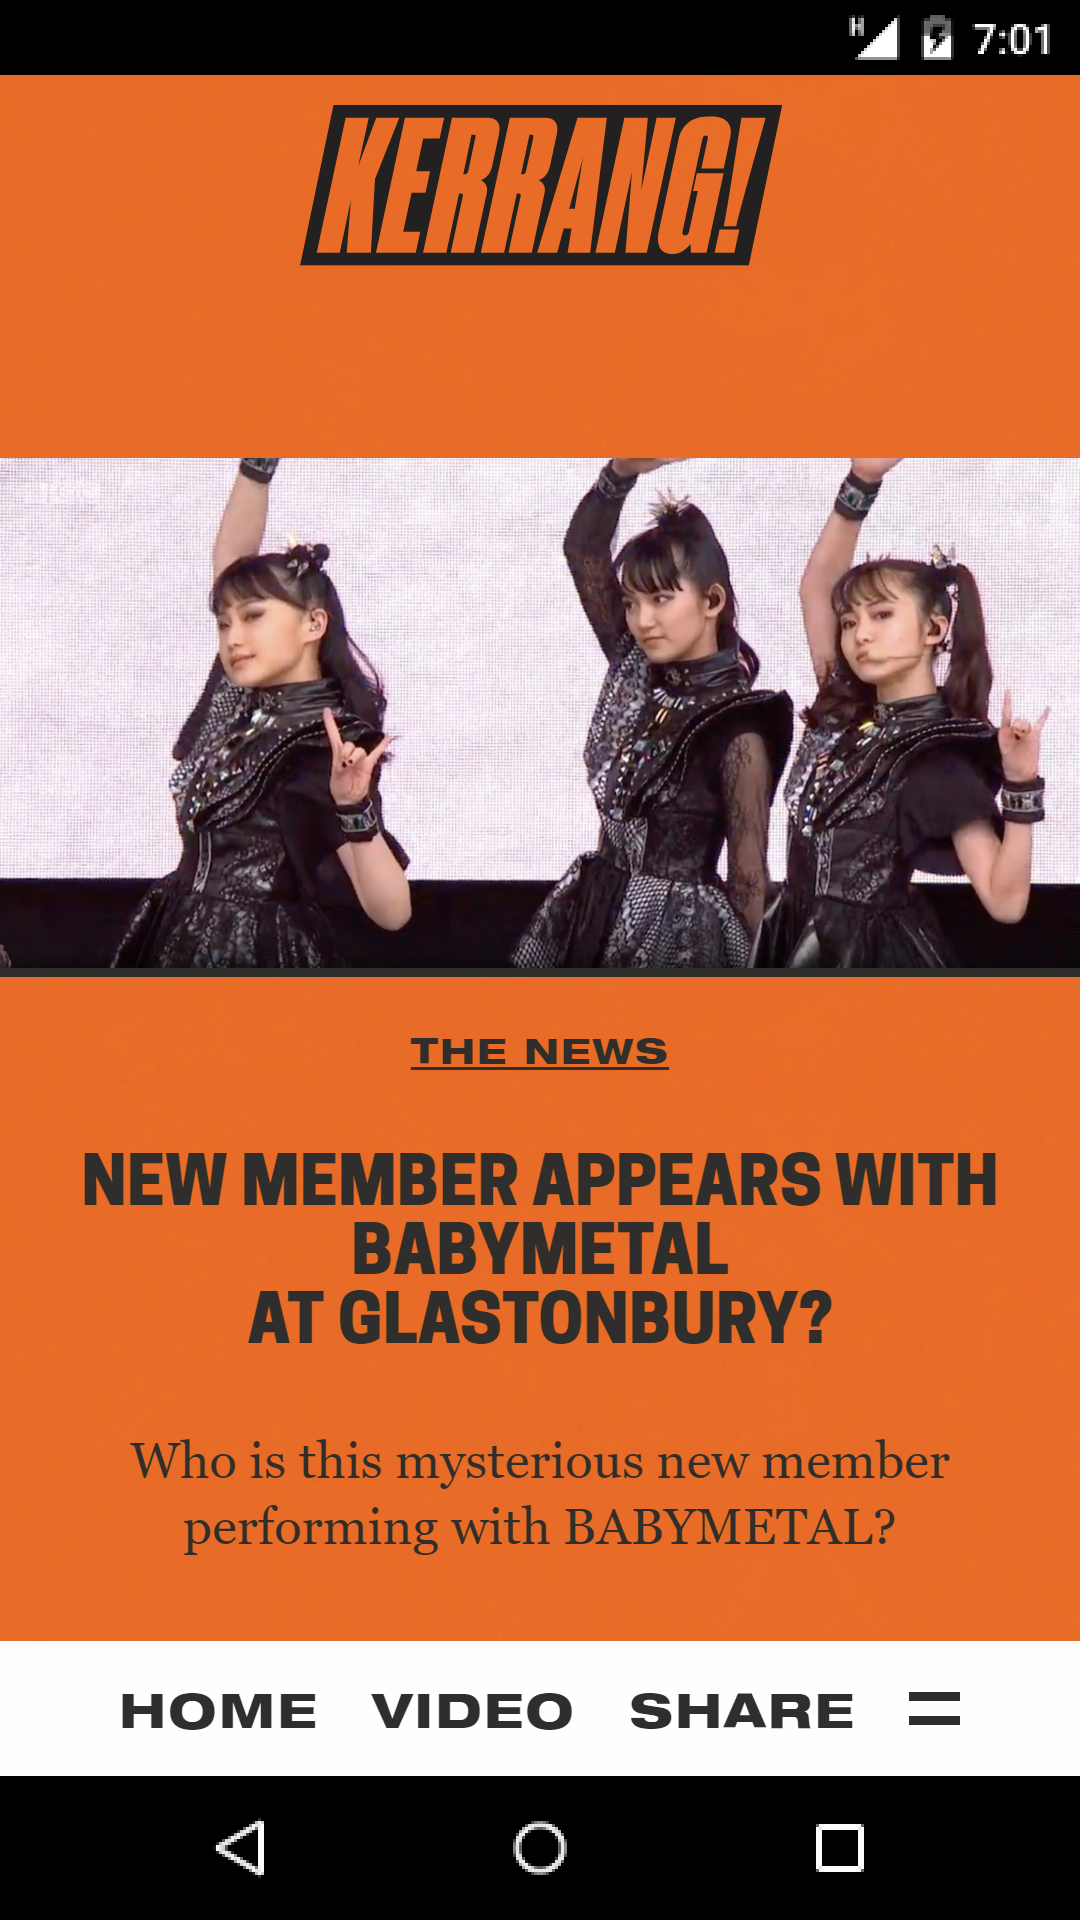 http://www.mybitchisajunky.com/whg/picture/www.kerrang.com_the-news_new-babymetal-member-appears-with-band-at-glastonbury.png